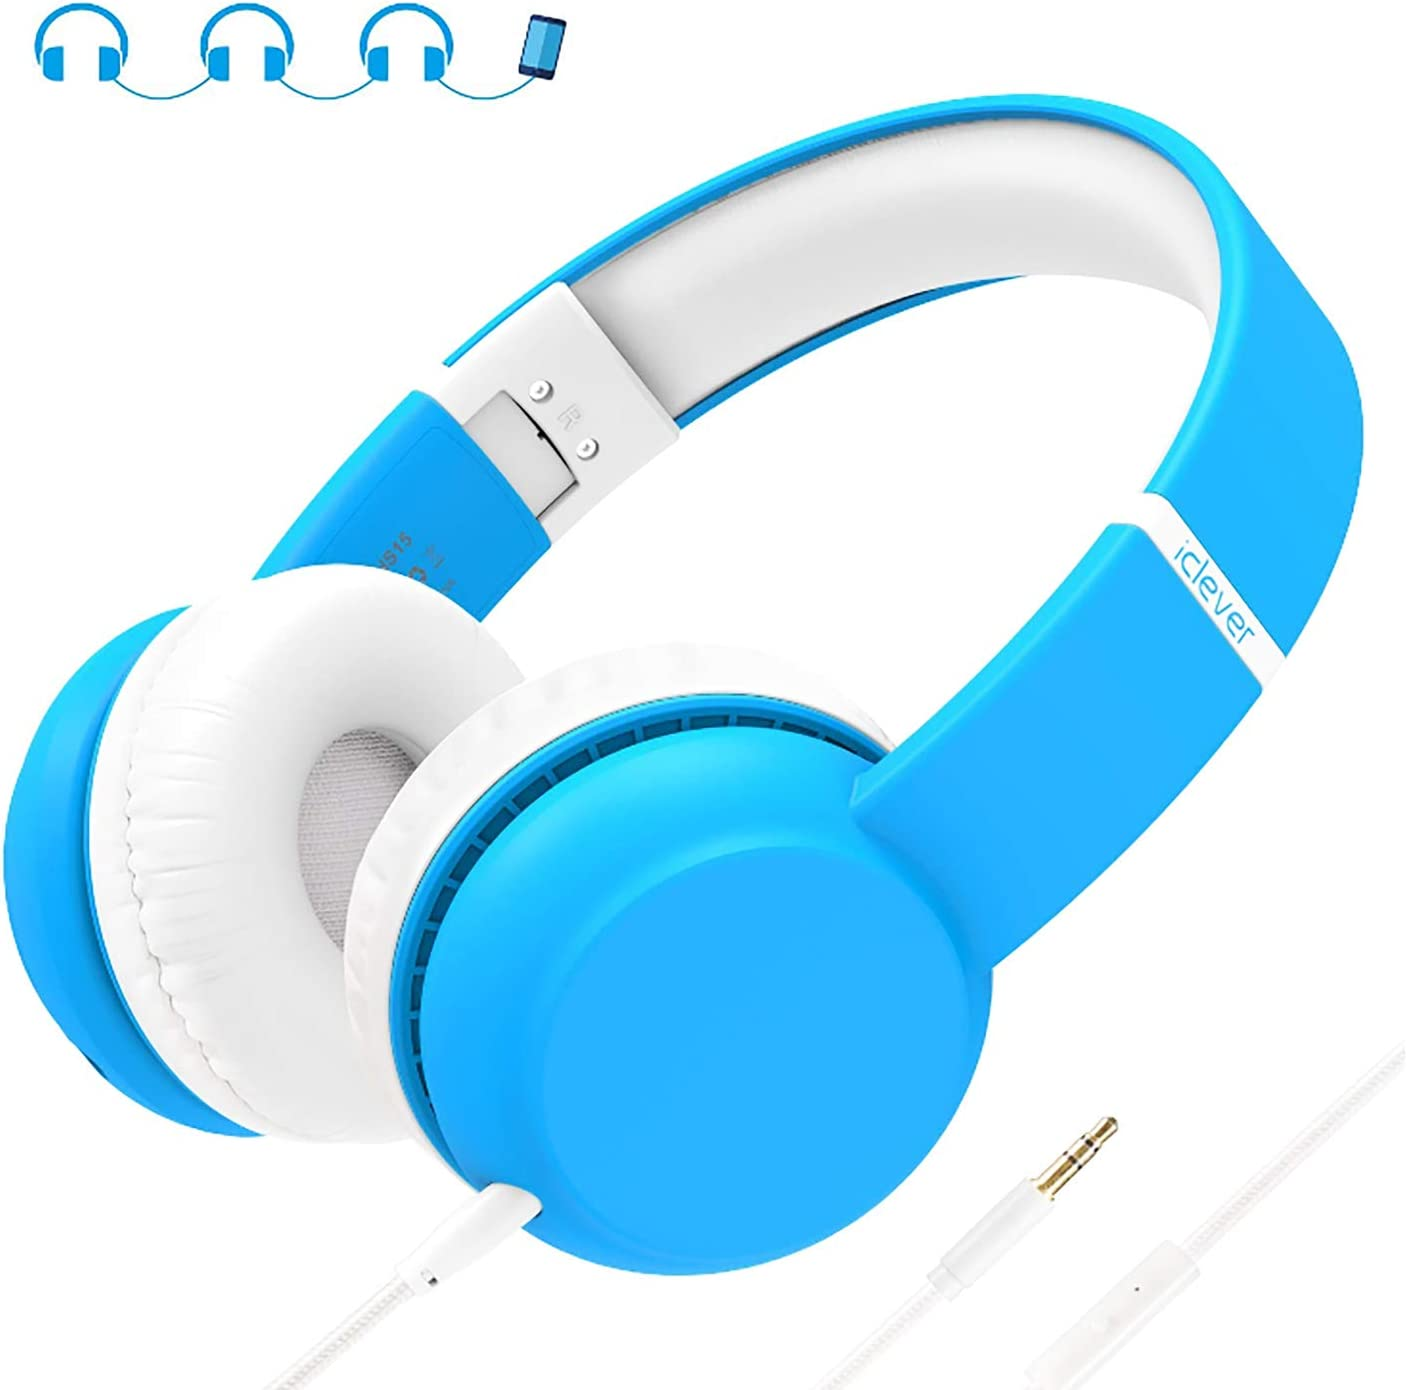 iClever HS15 Kids Headphones - Wired Headphones for Kids Stereo Sound Adjustable Metal Headband Microphone Foldable Tangle-Free Wires 94dB Volume Limiting - Childrens Headphones Over Ear, Blue, Small